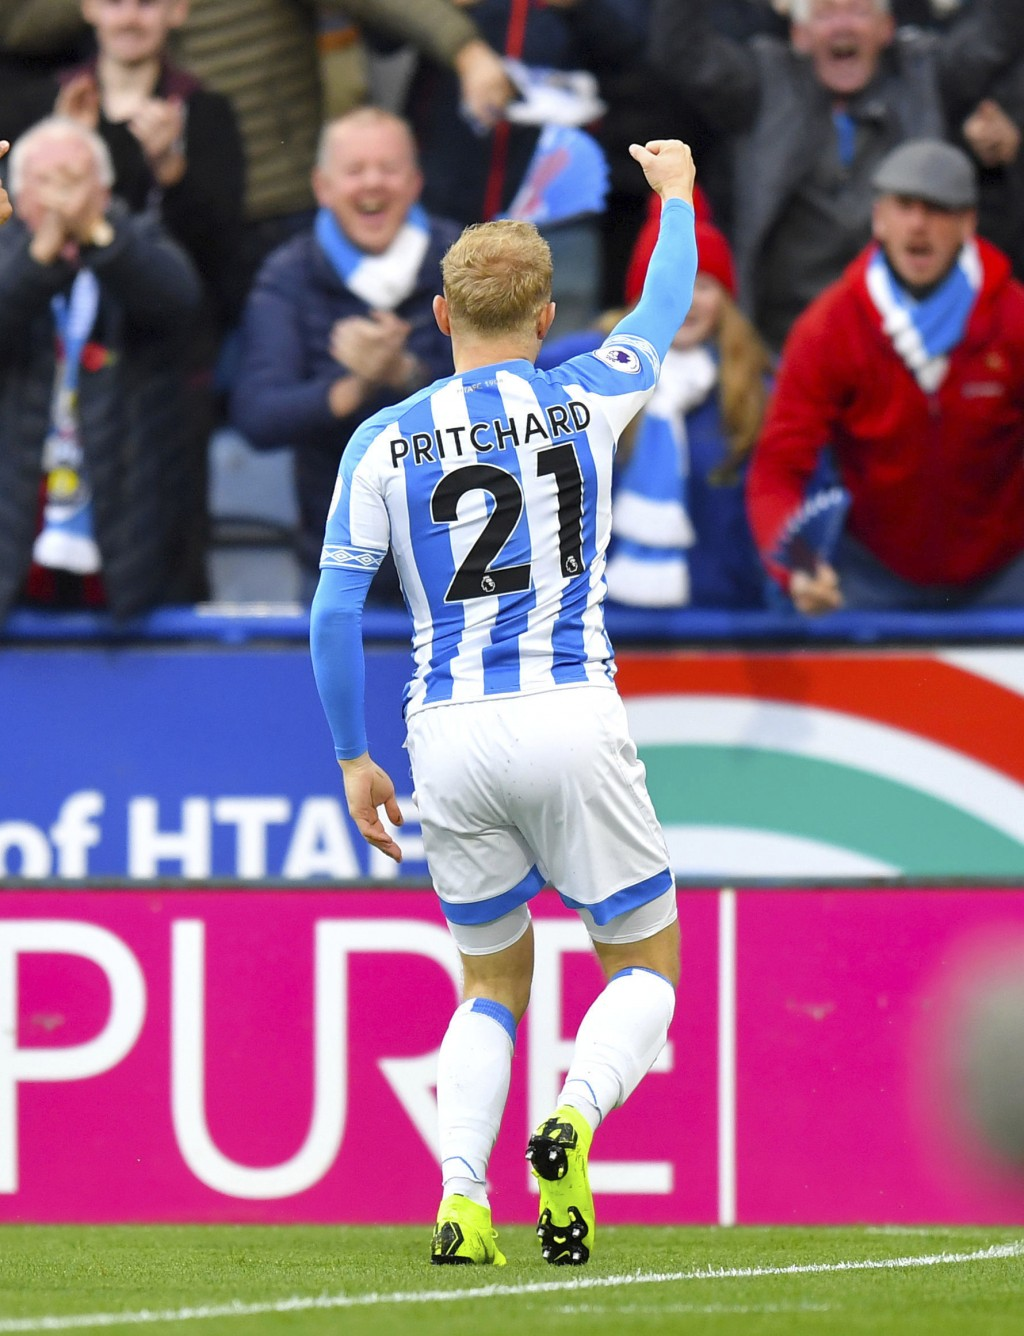 Huddersfield Town's Alex Pritchard celebrates scoring his side's first goal of the game during the English Premier League soccer match between Hudders